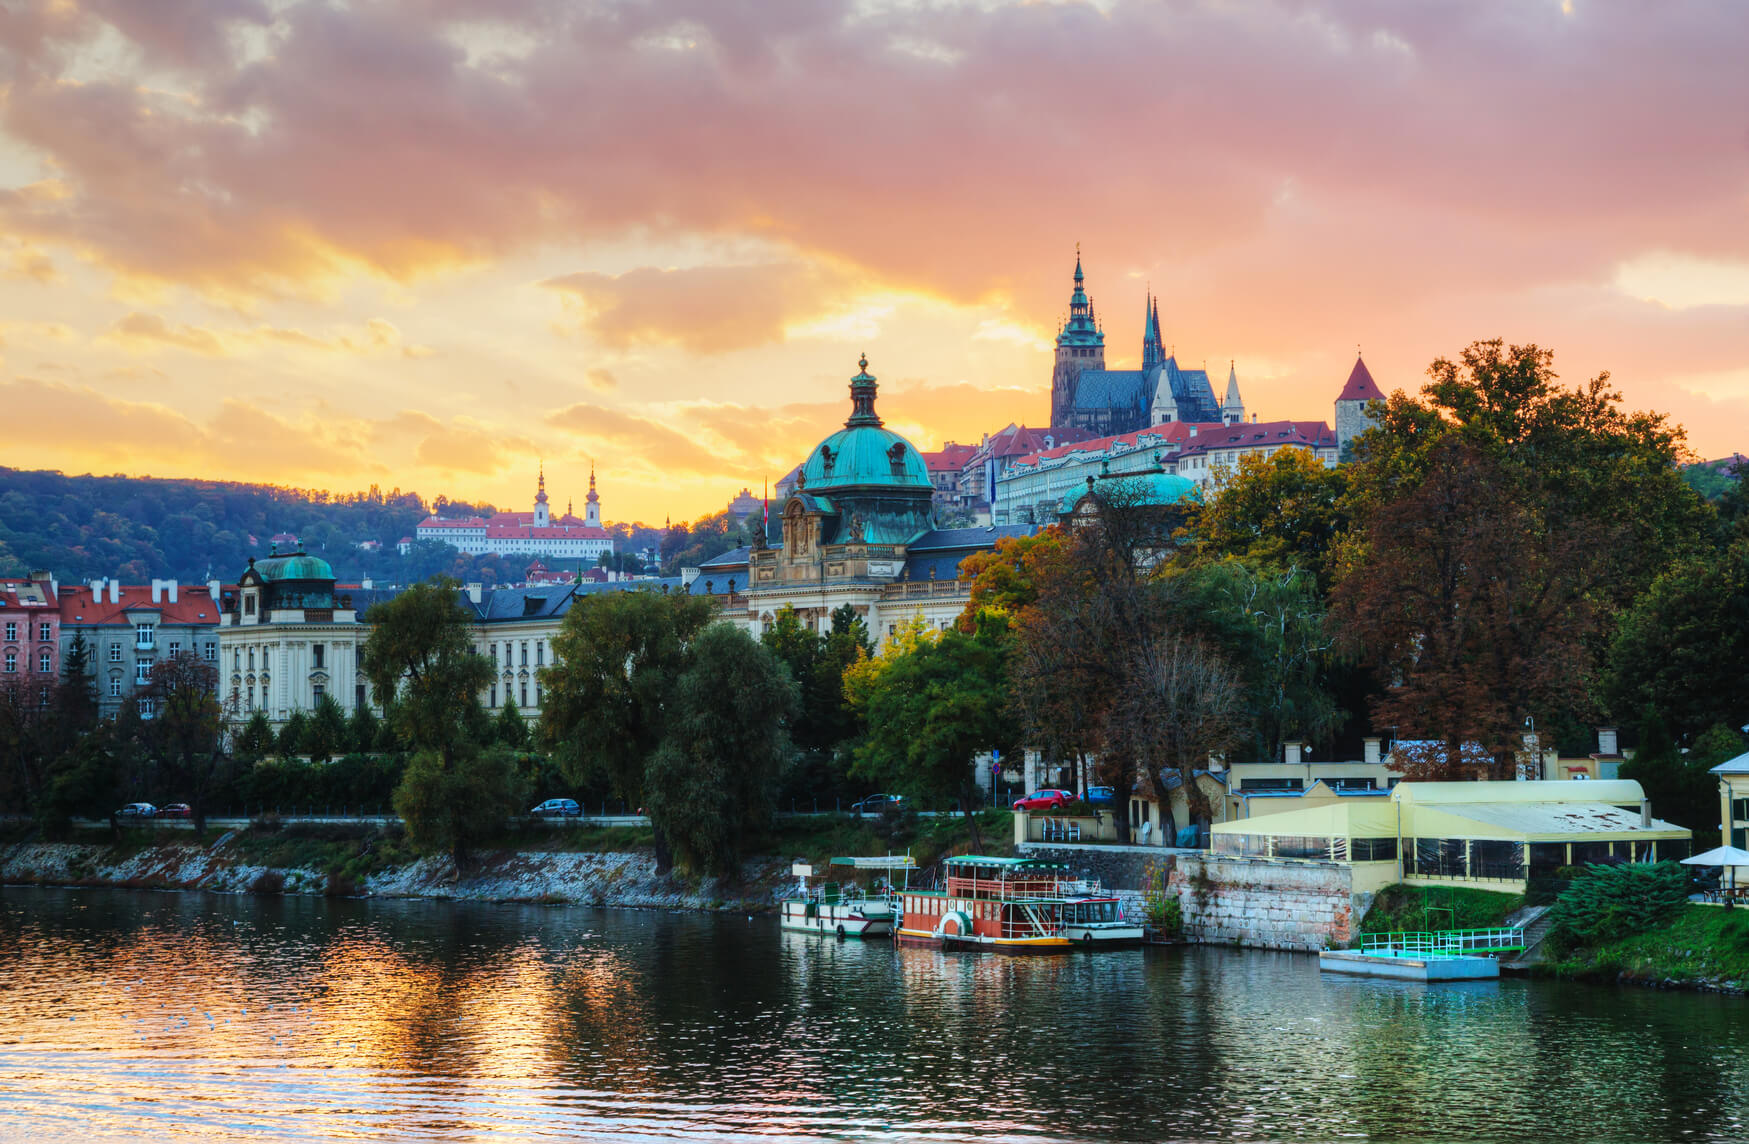 **EXPIRED** New York to Prague, Czech Republic for only $278 roundtrip (& vice versa for €271)